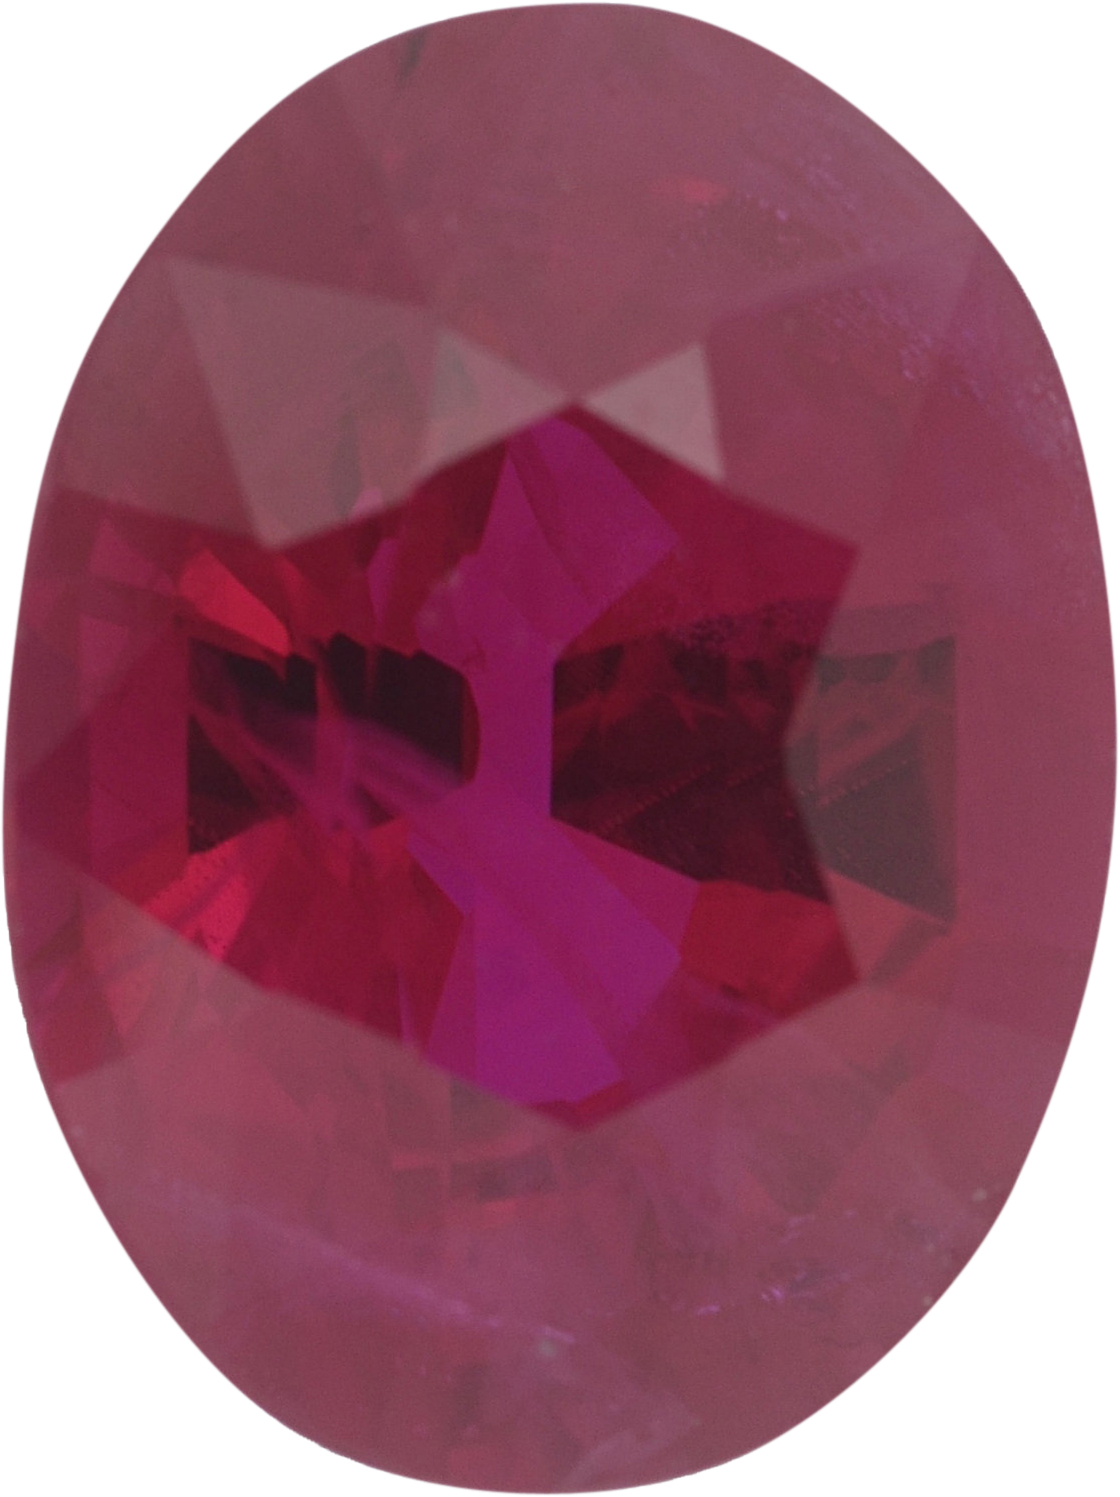 Great Deal on Oval Cut Loose Ruby Gem,  Red Color, 7.45 x 5.62 mm, 1.28 carats